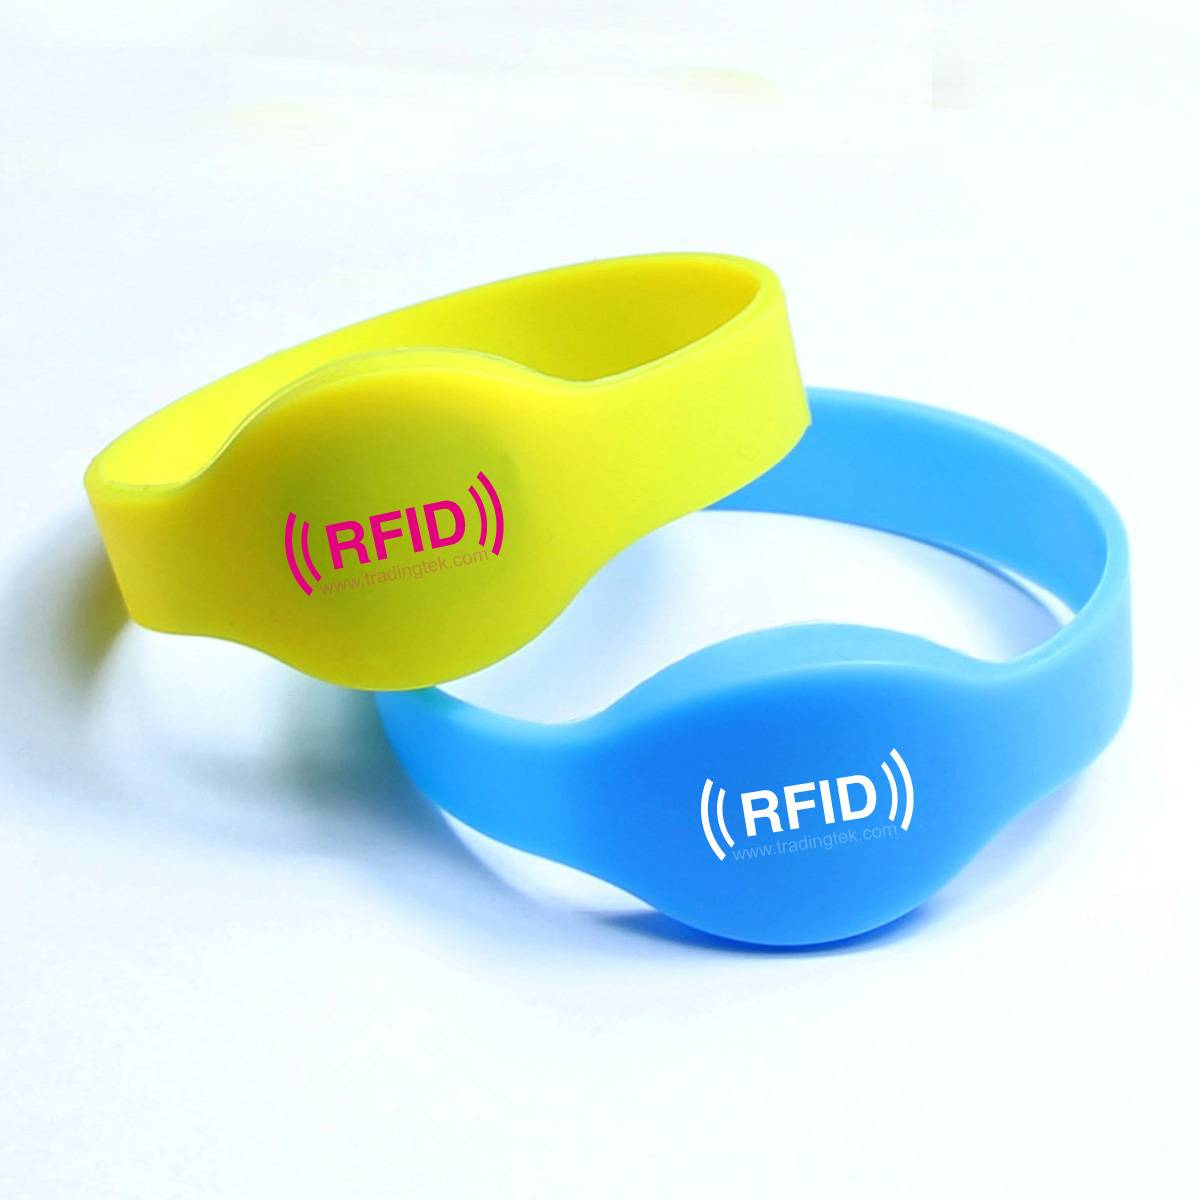 ddfejm hand photo bracelet on rfid alamy stock his